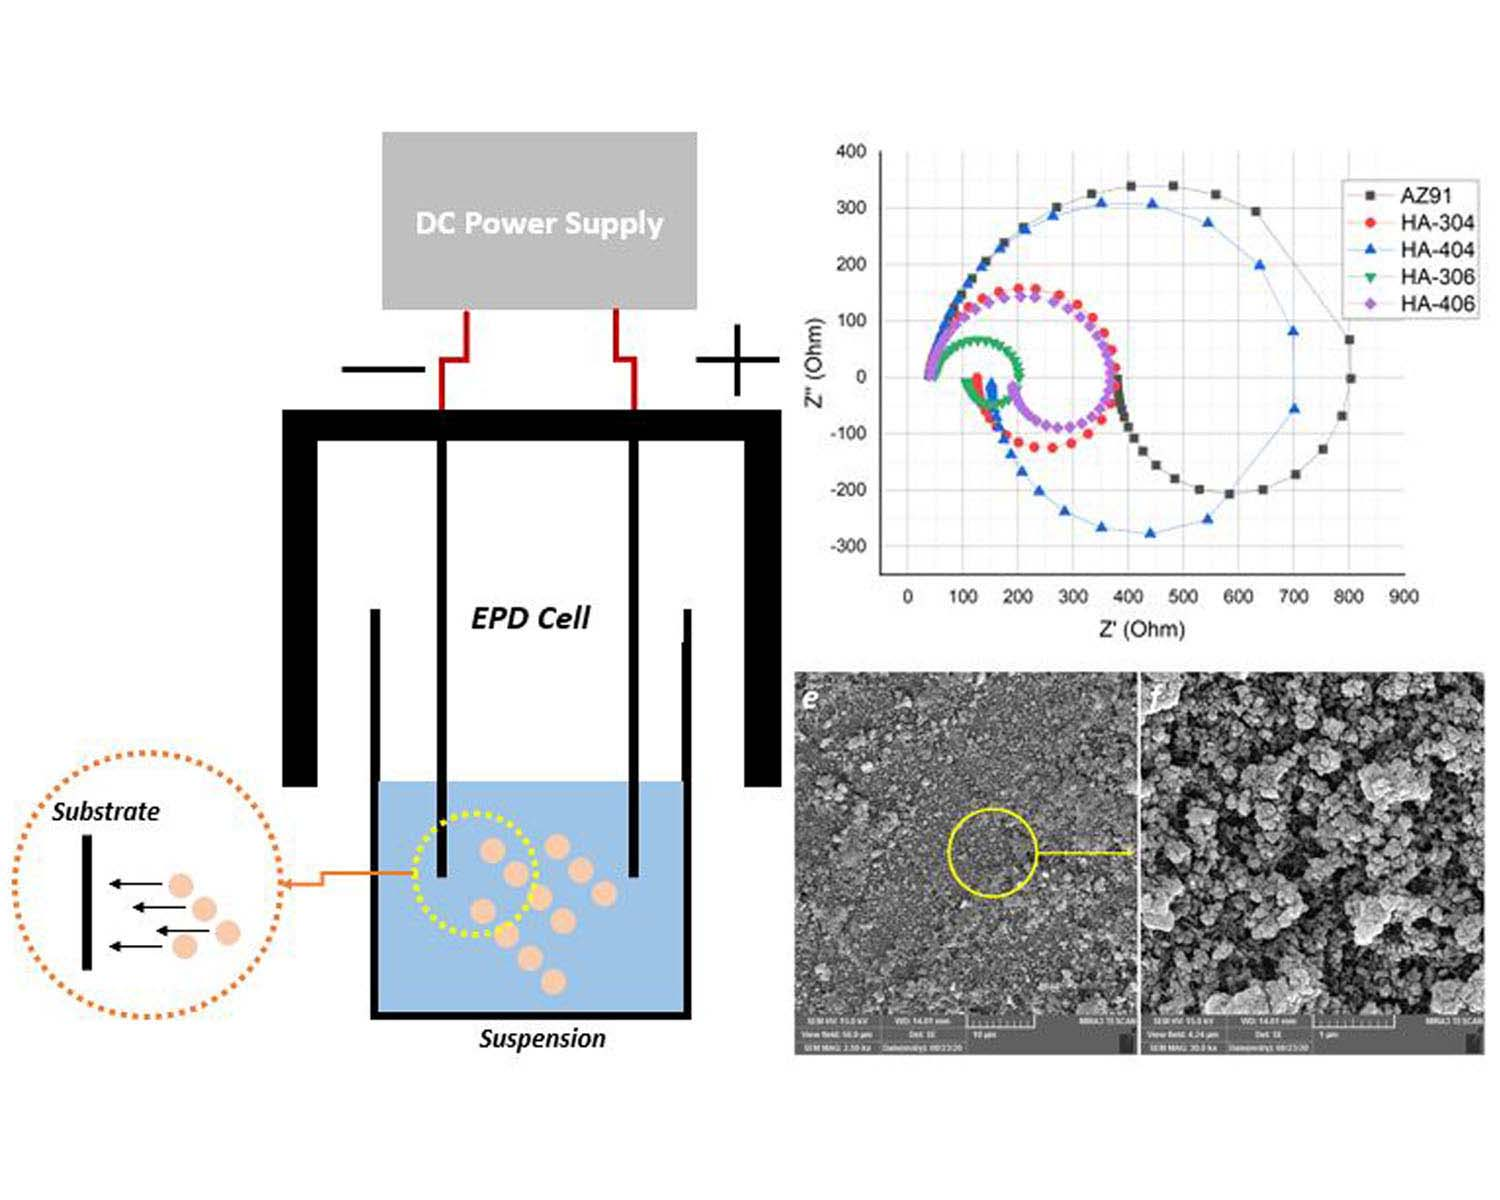 Electrochemical evaluation of the hydroxyapatite coating synthesized on the AZ91 by electrophoretic deposition route